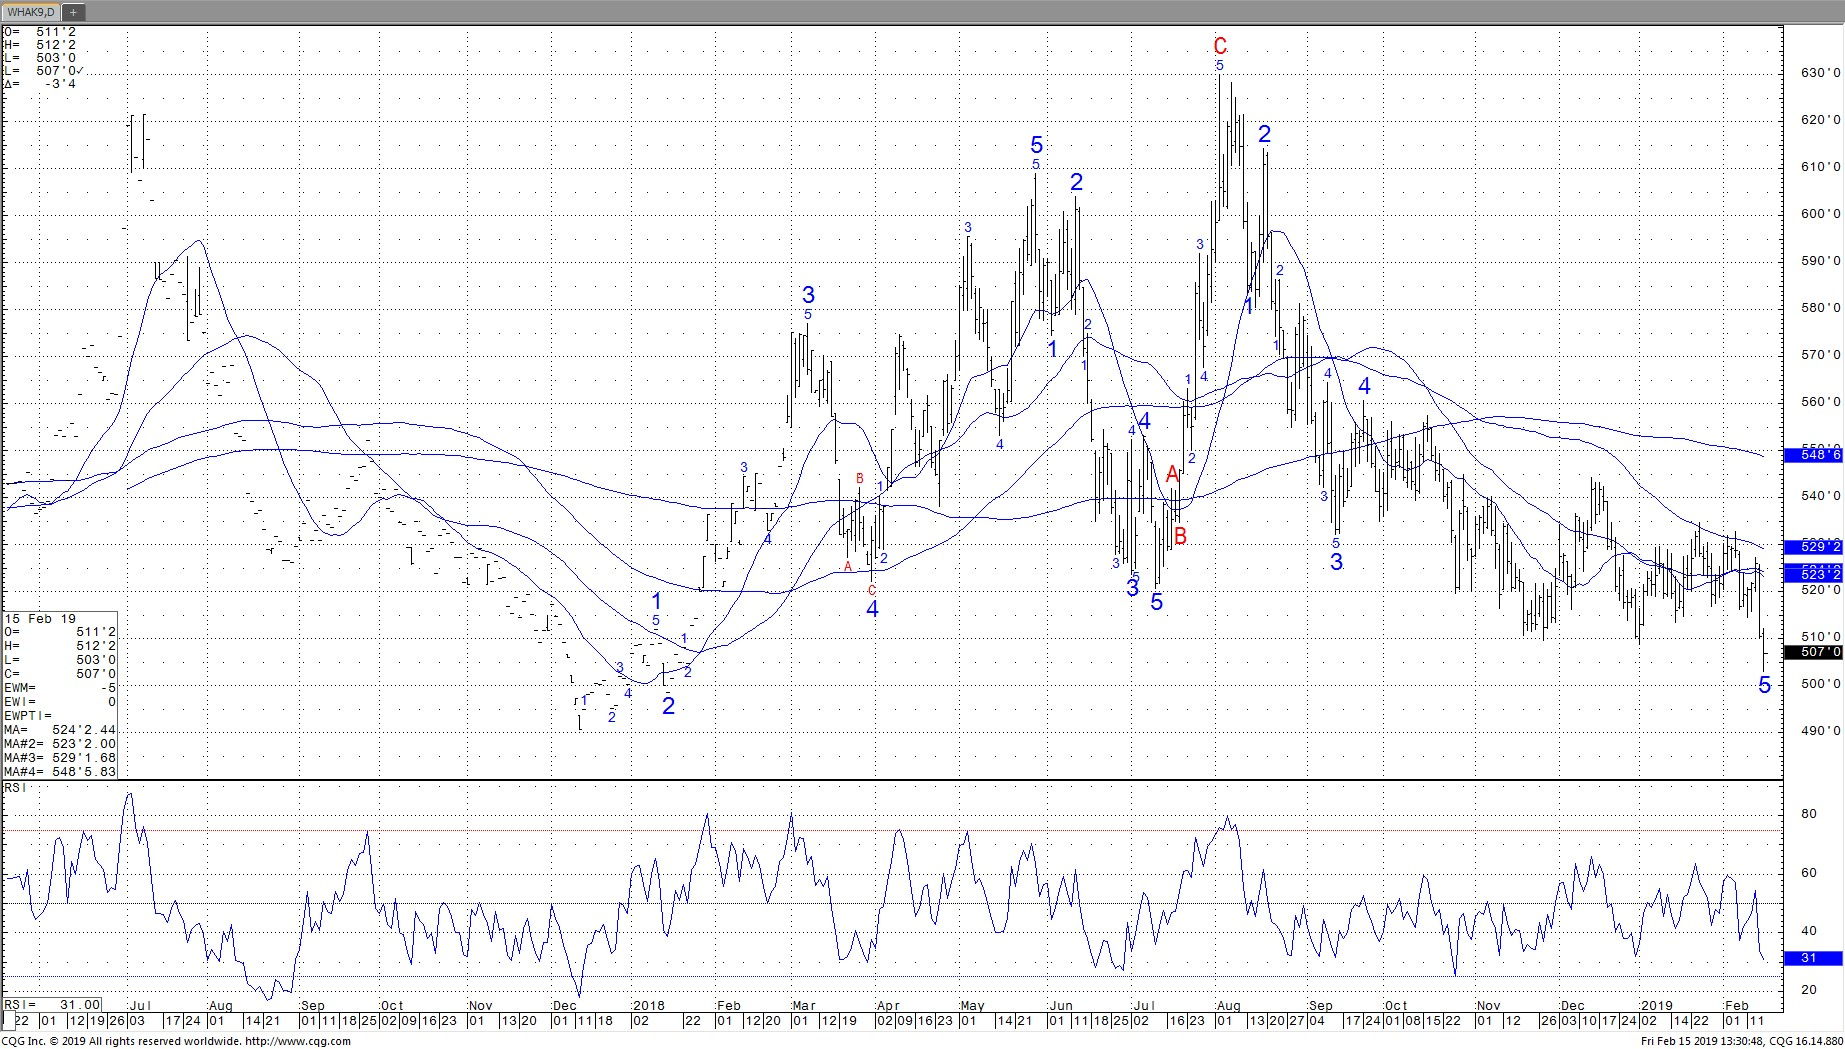 May Chicago Wheat Daily Chart